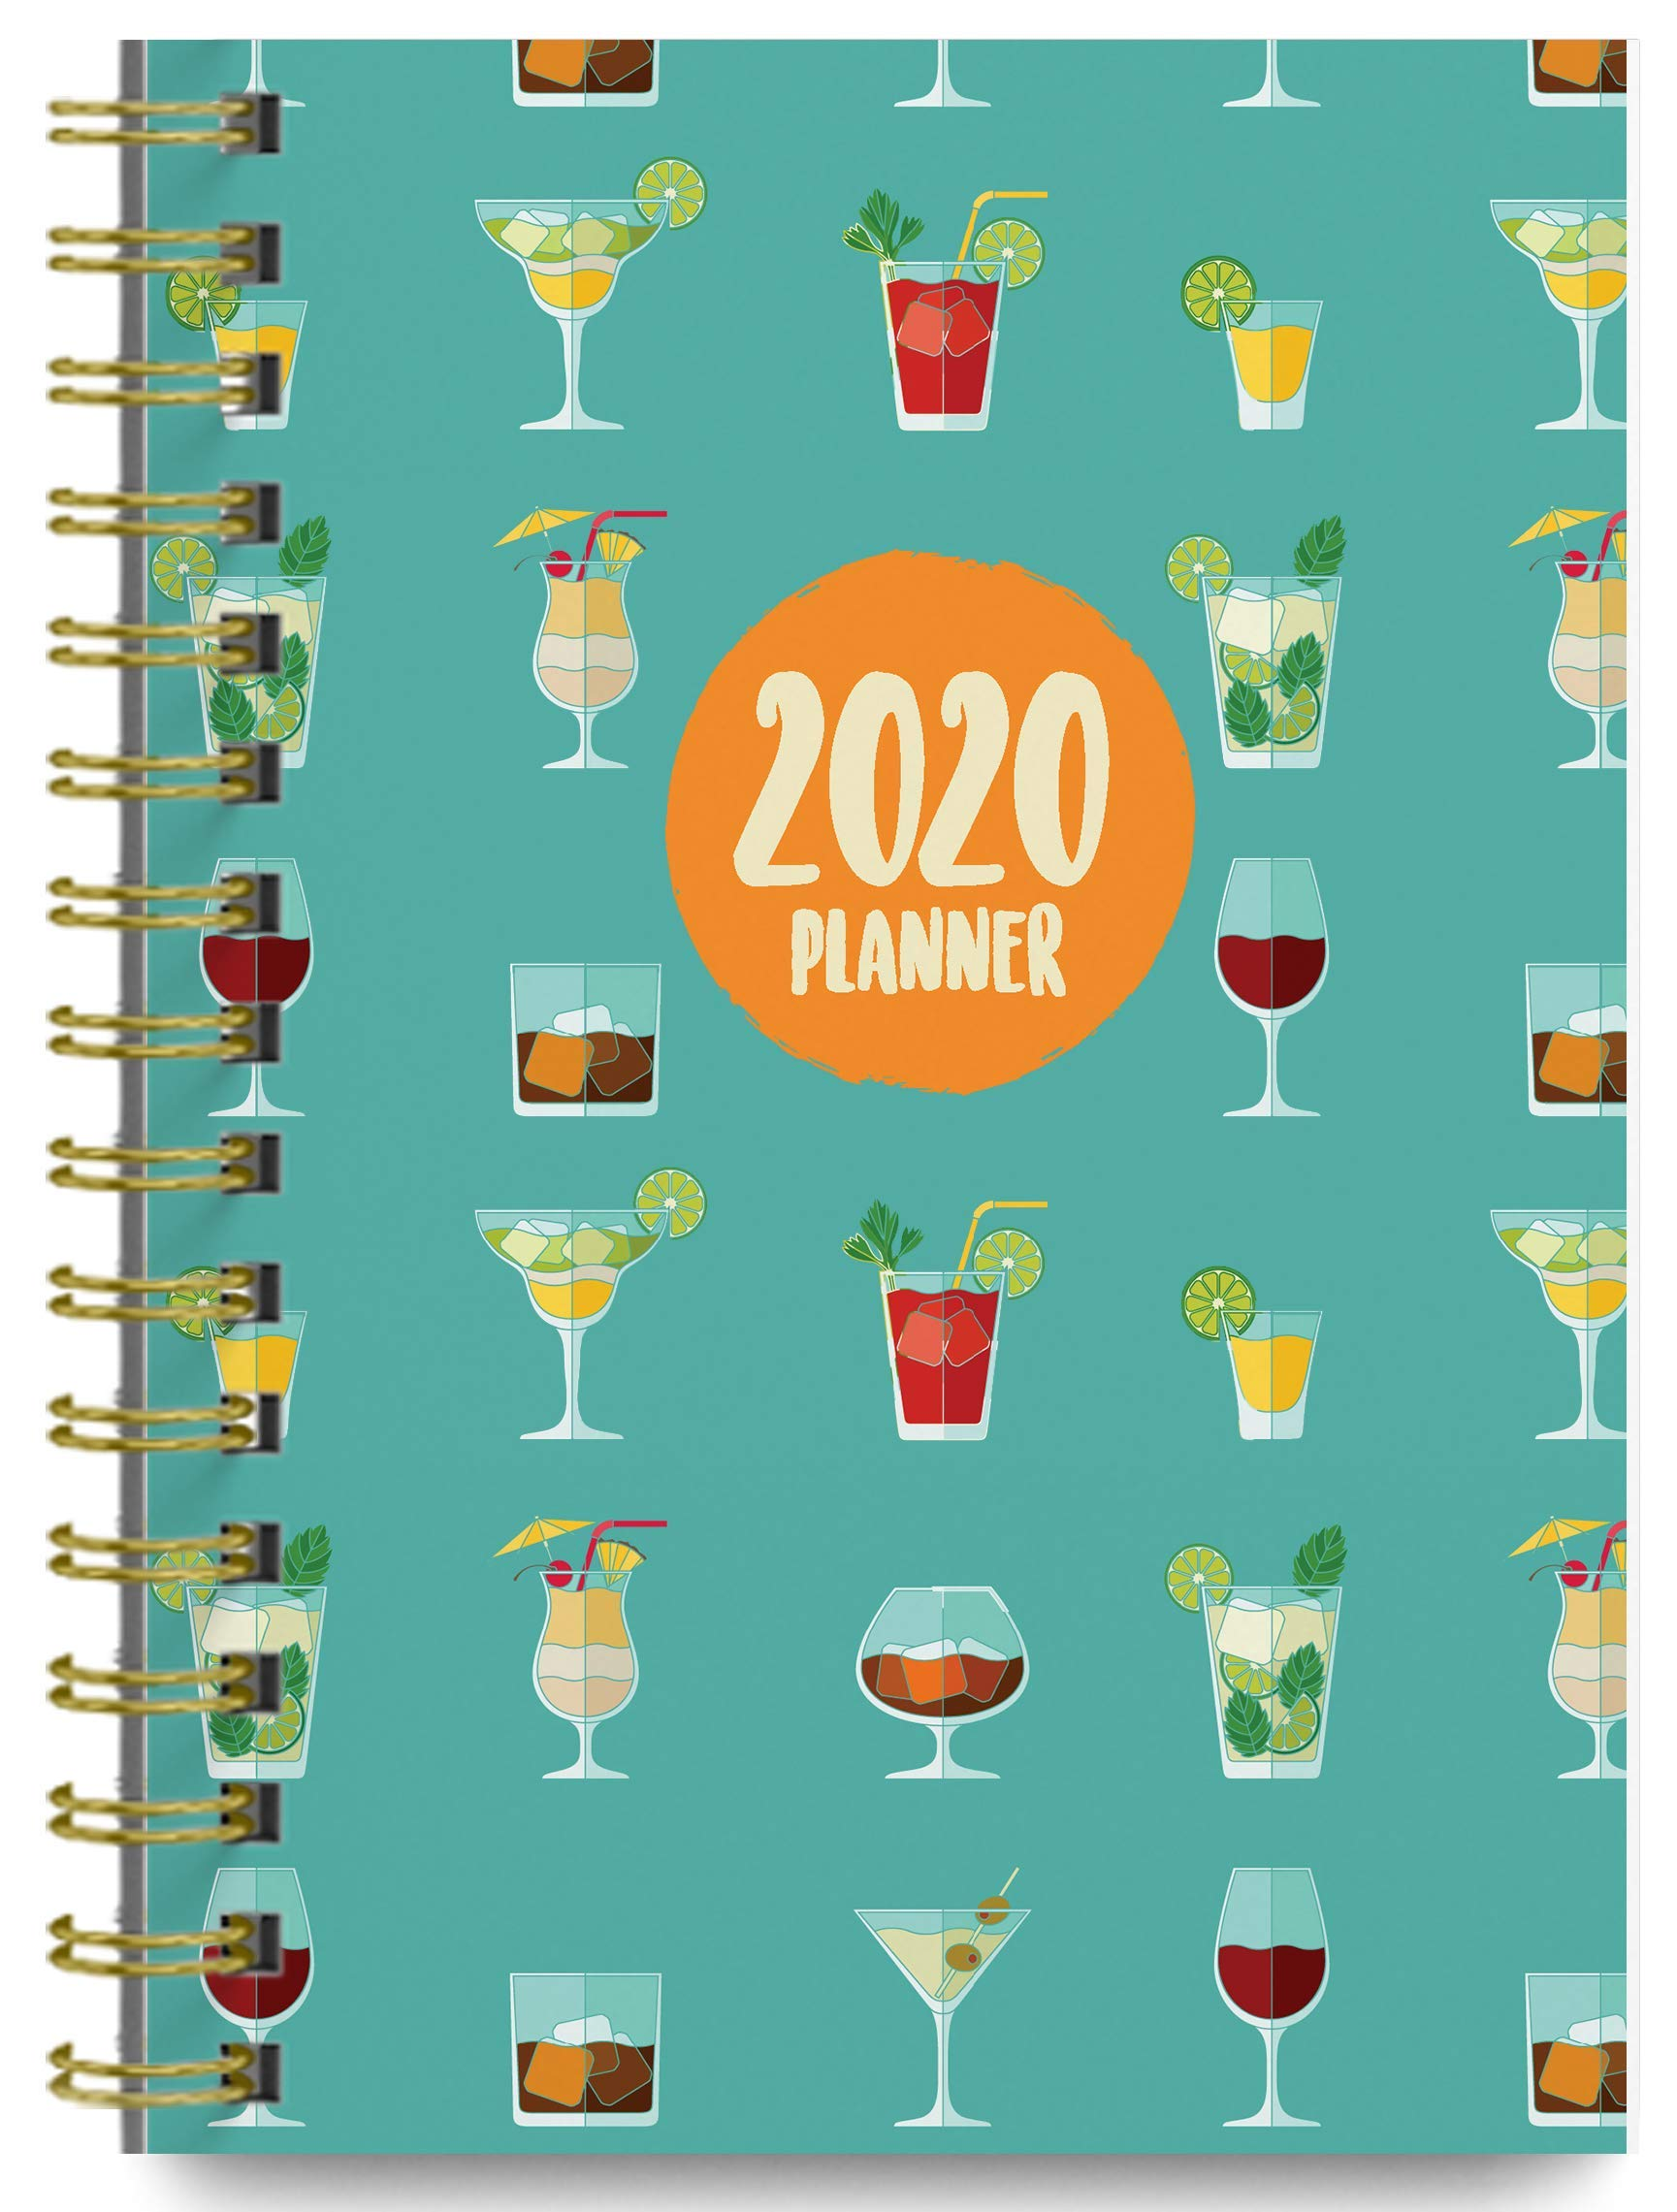 2020 Margaritas Soft Cover Academic Year Day Planner Book by Bright Day, Weekly Monthly Dated Agenda Spiral Bound Organizer, 16 Month Calendar 6.25 x 8.25 Inch,